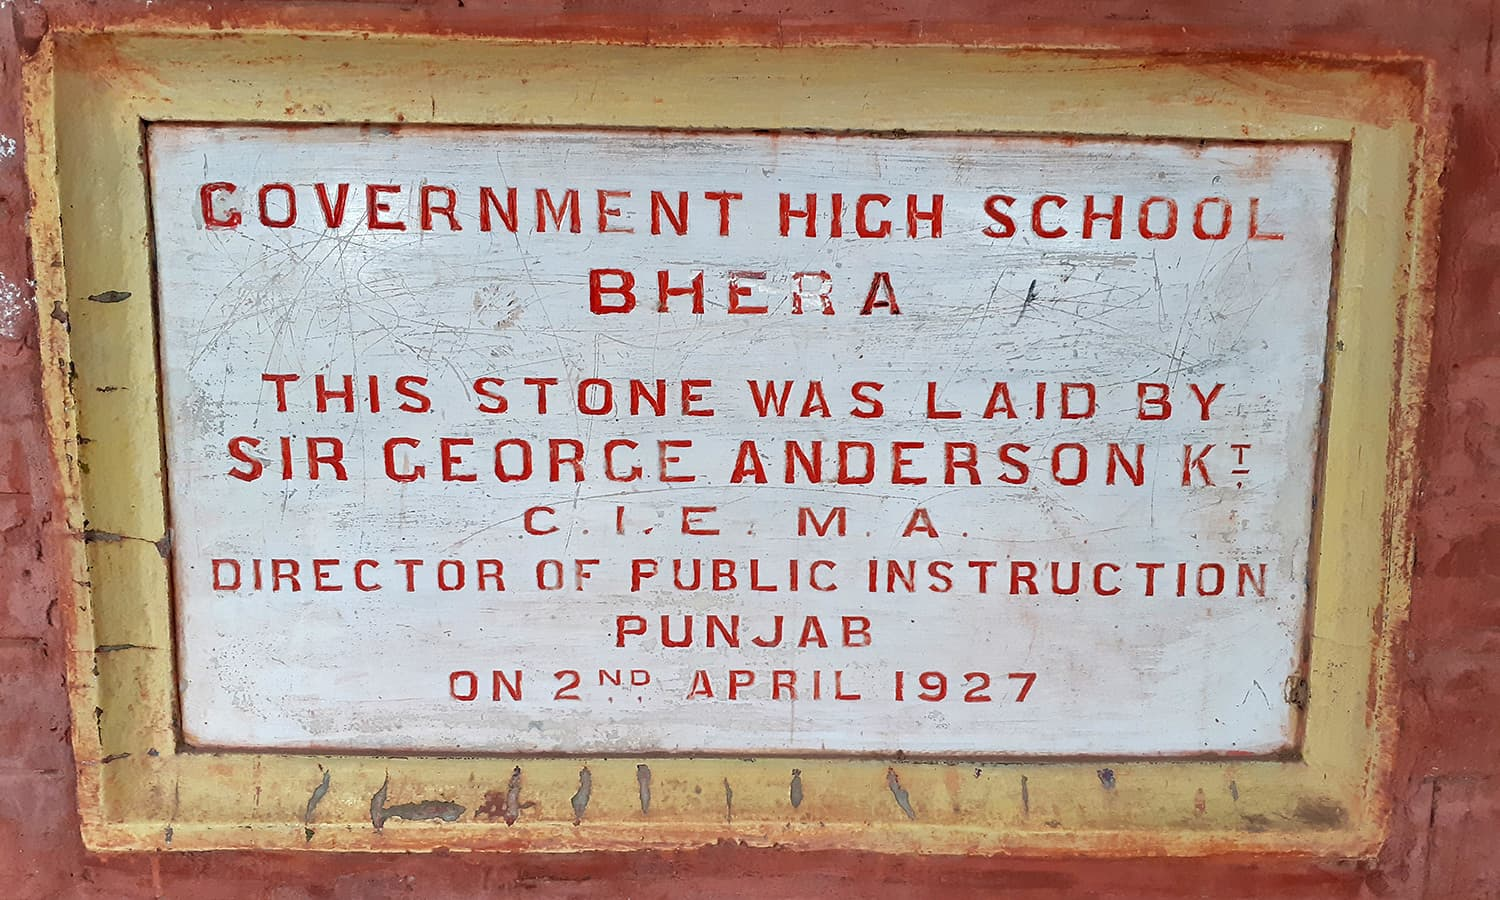 The school's inaugural plaque.